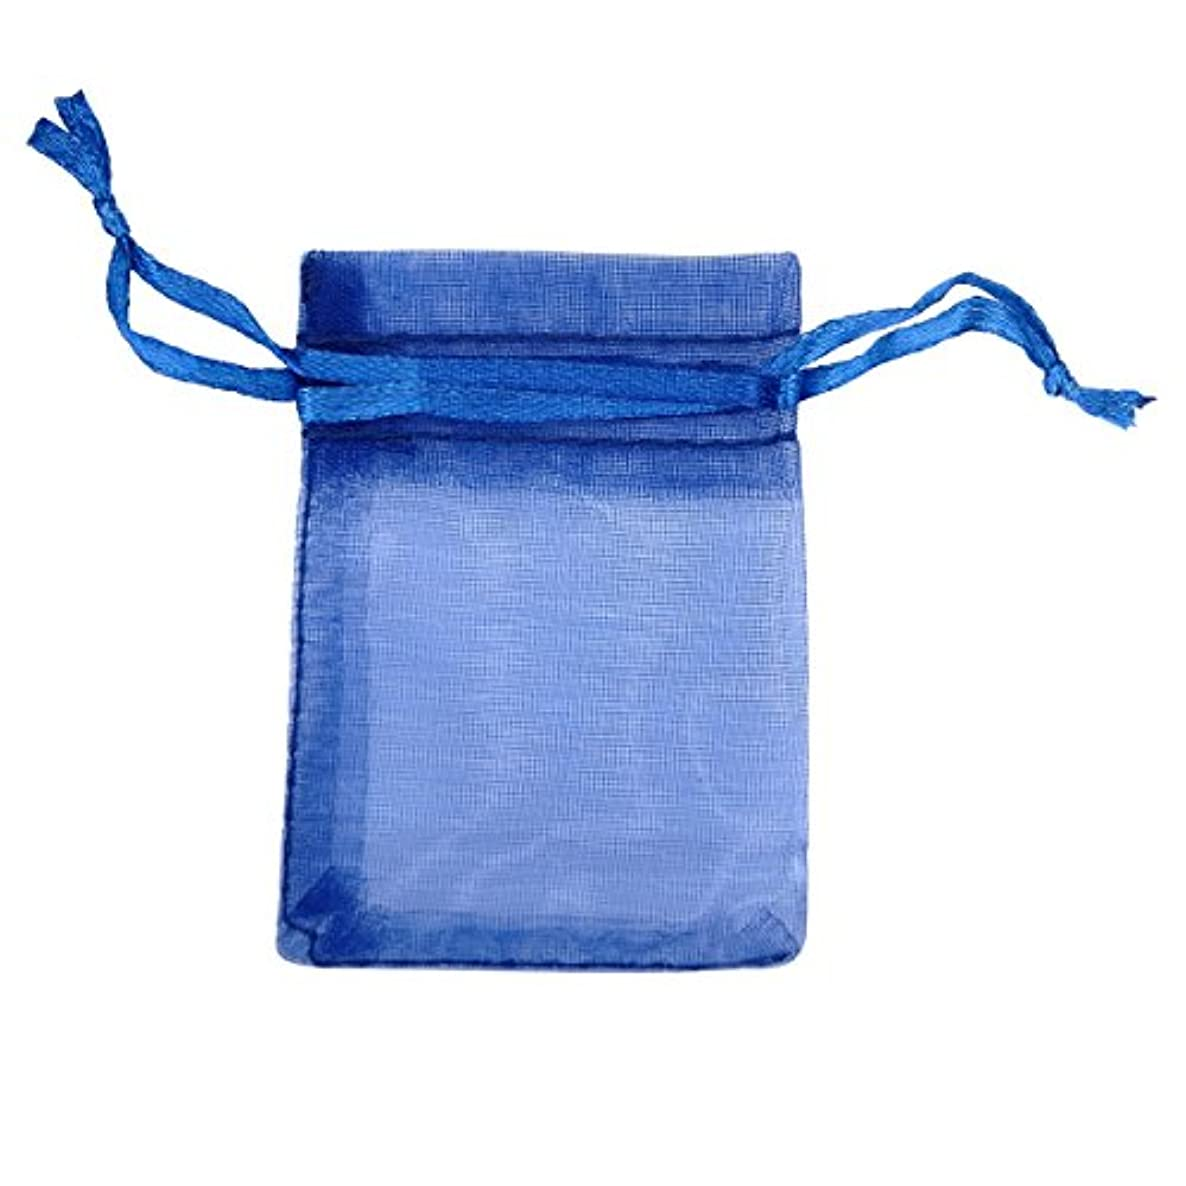 Dark Navy Drawstring Organza Jewelry Pouch Bags Favor Gift Bags for Party/Game/Wedding,Set of 50pcs